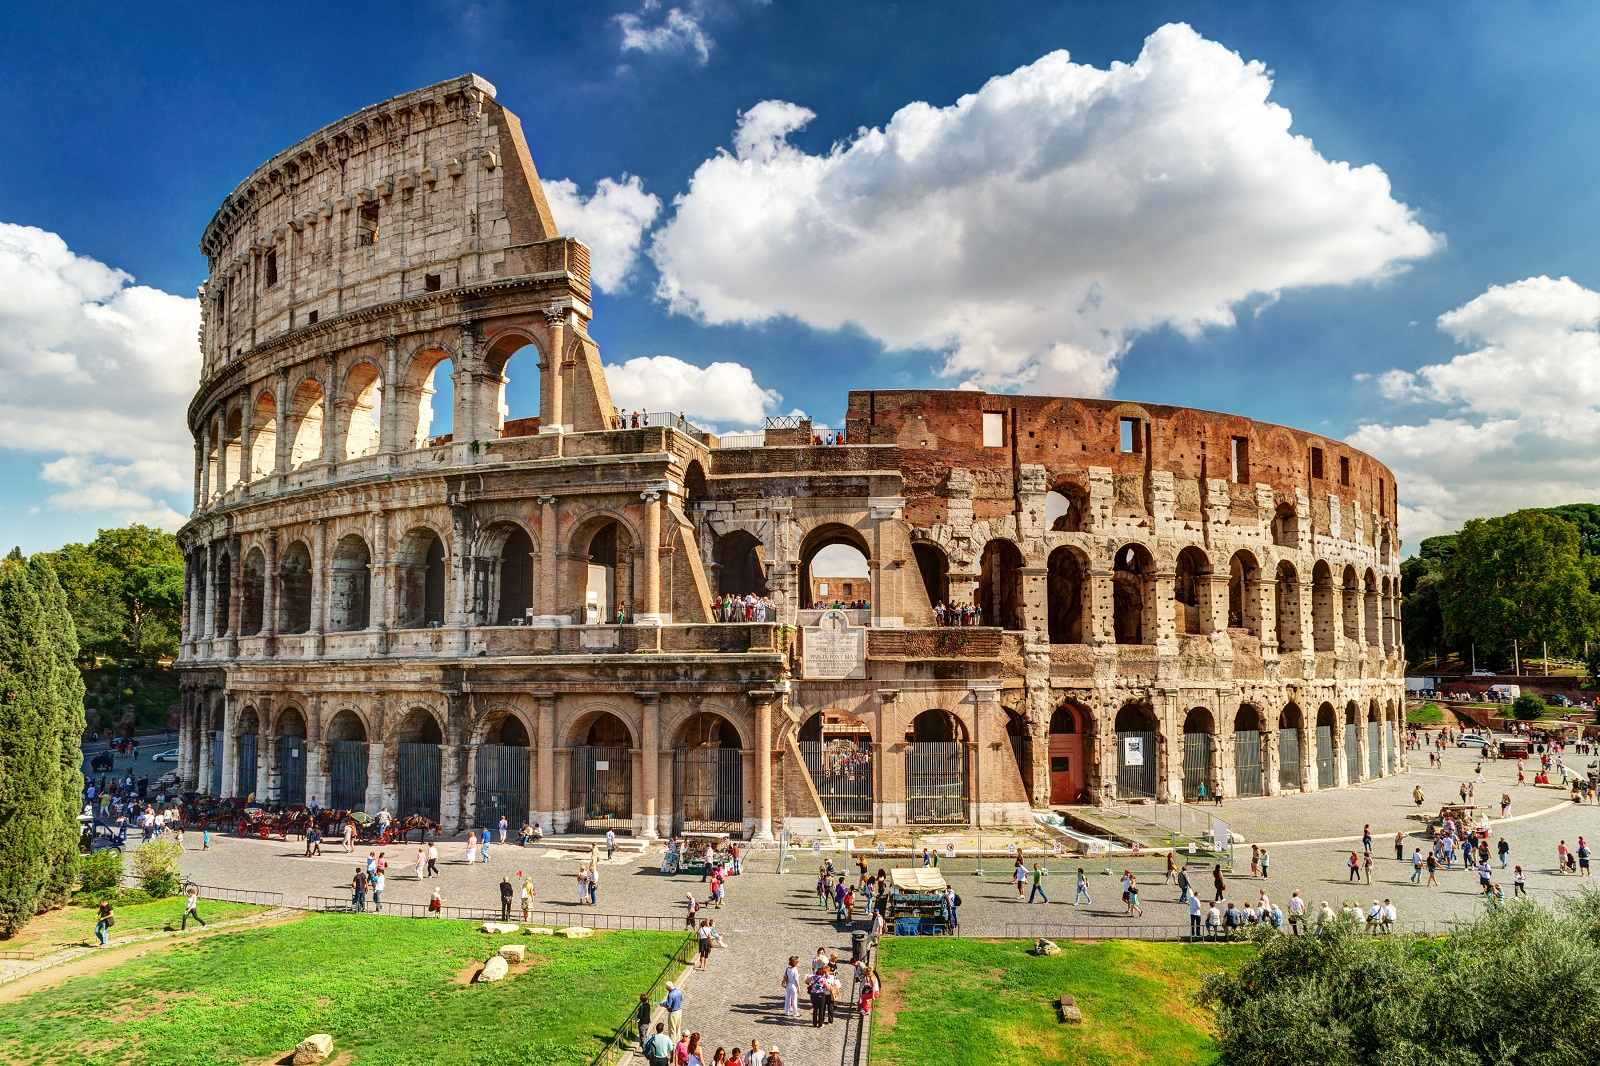 Built in Classical style, the famous Colosseum in Rome could hold nearly 50 to 80,000 spectators in its heyday, who all flocked to the amphitheatre to watch gladiatorial contests.